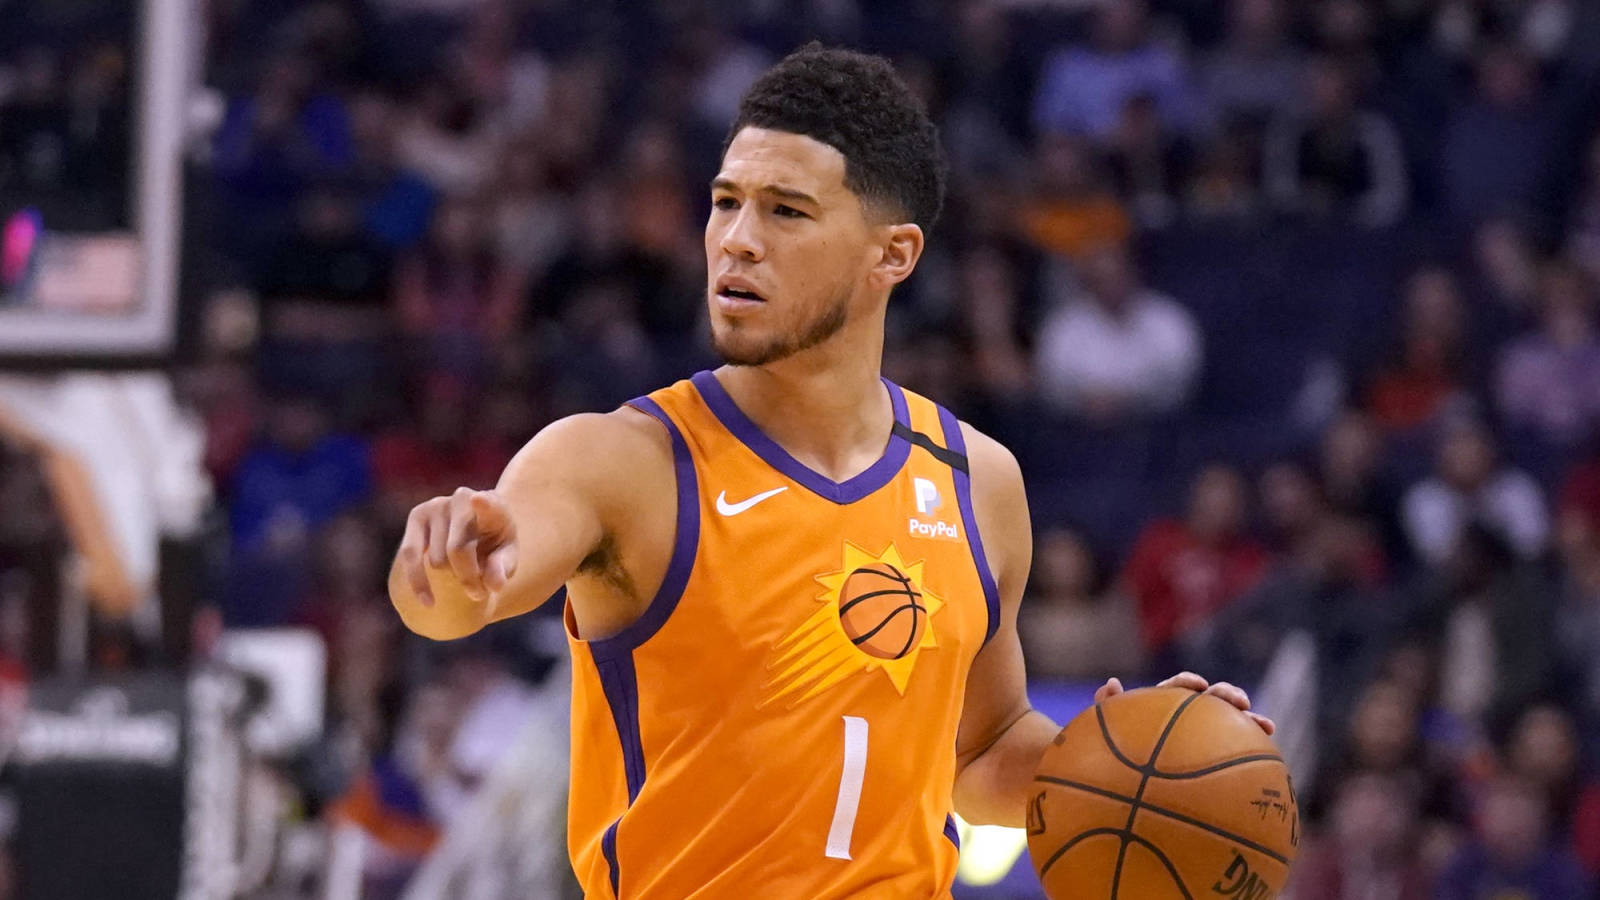 Devin Booker replacing Damian Lillard in All-Star Game, 3-Point Contest